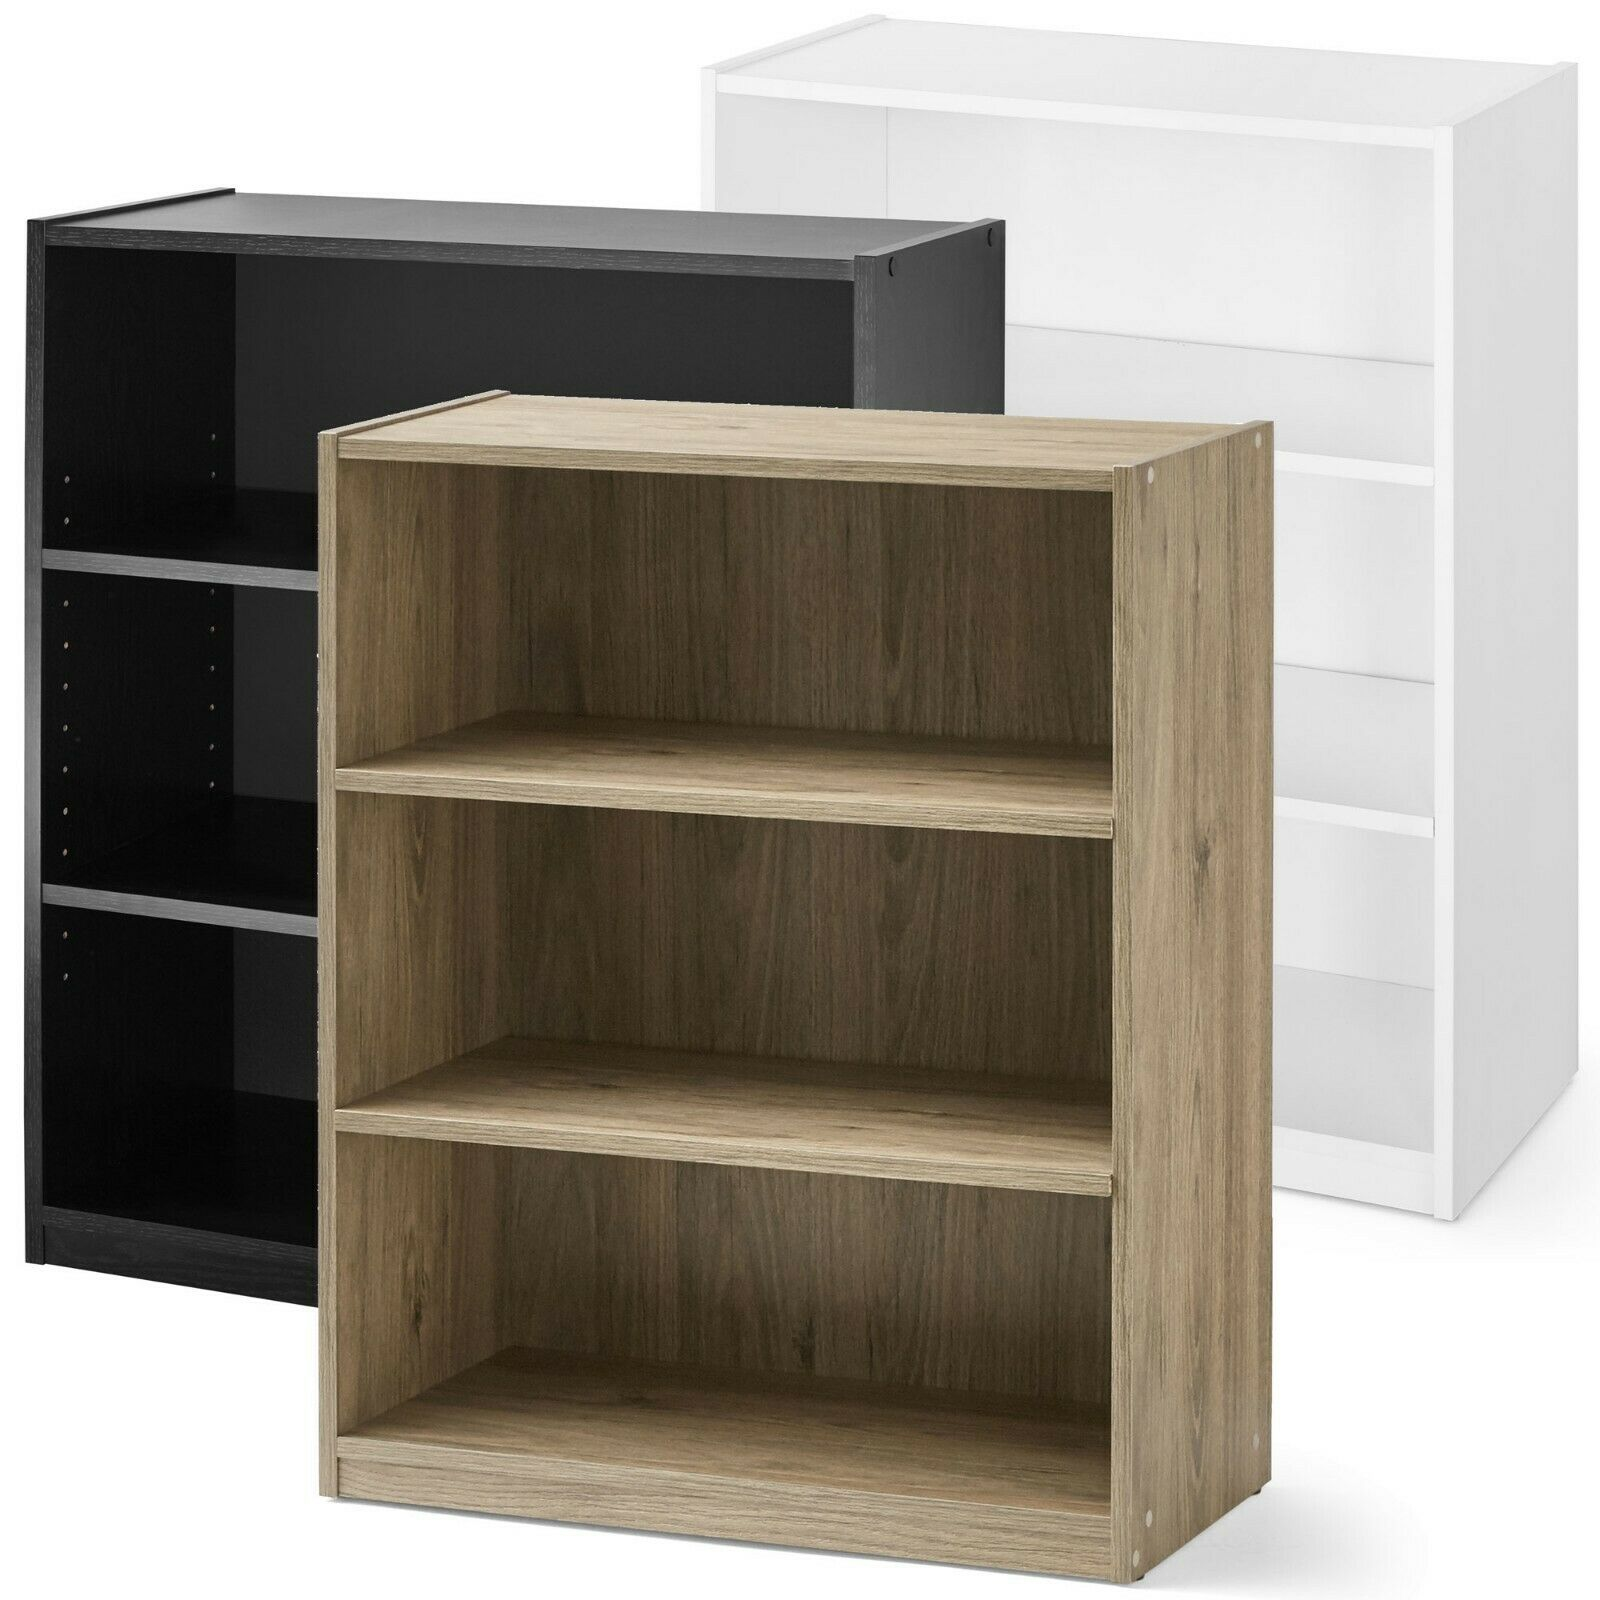 3-Shelf Wood Bookcase, Wide Storage Book Display Bookshelf A